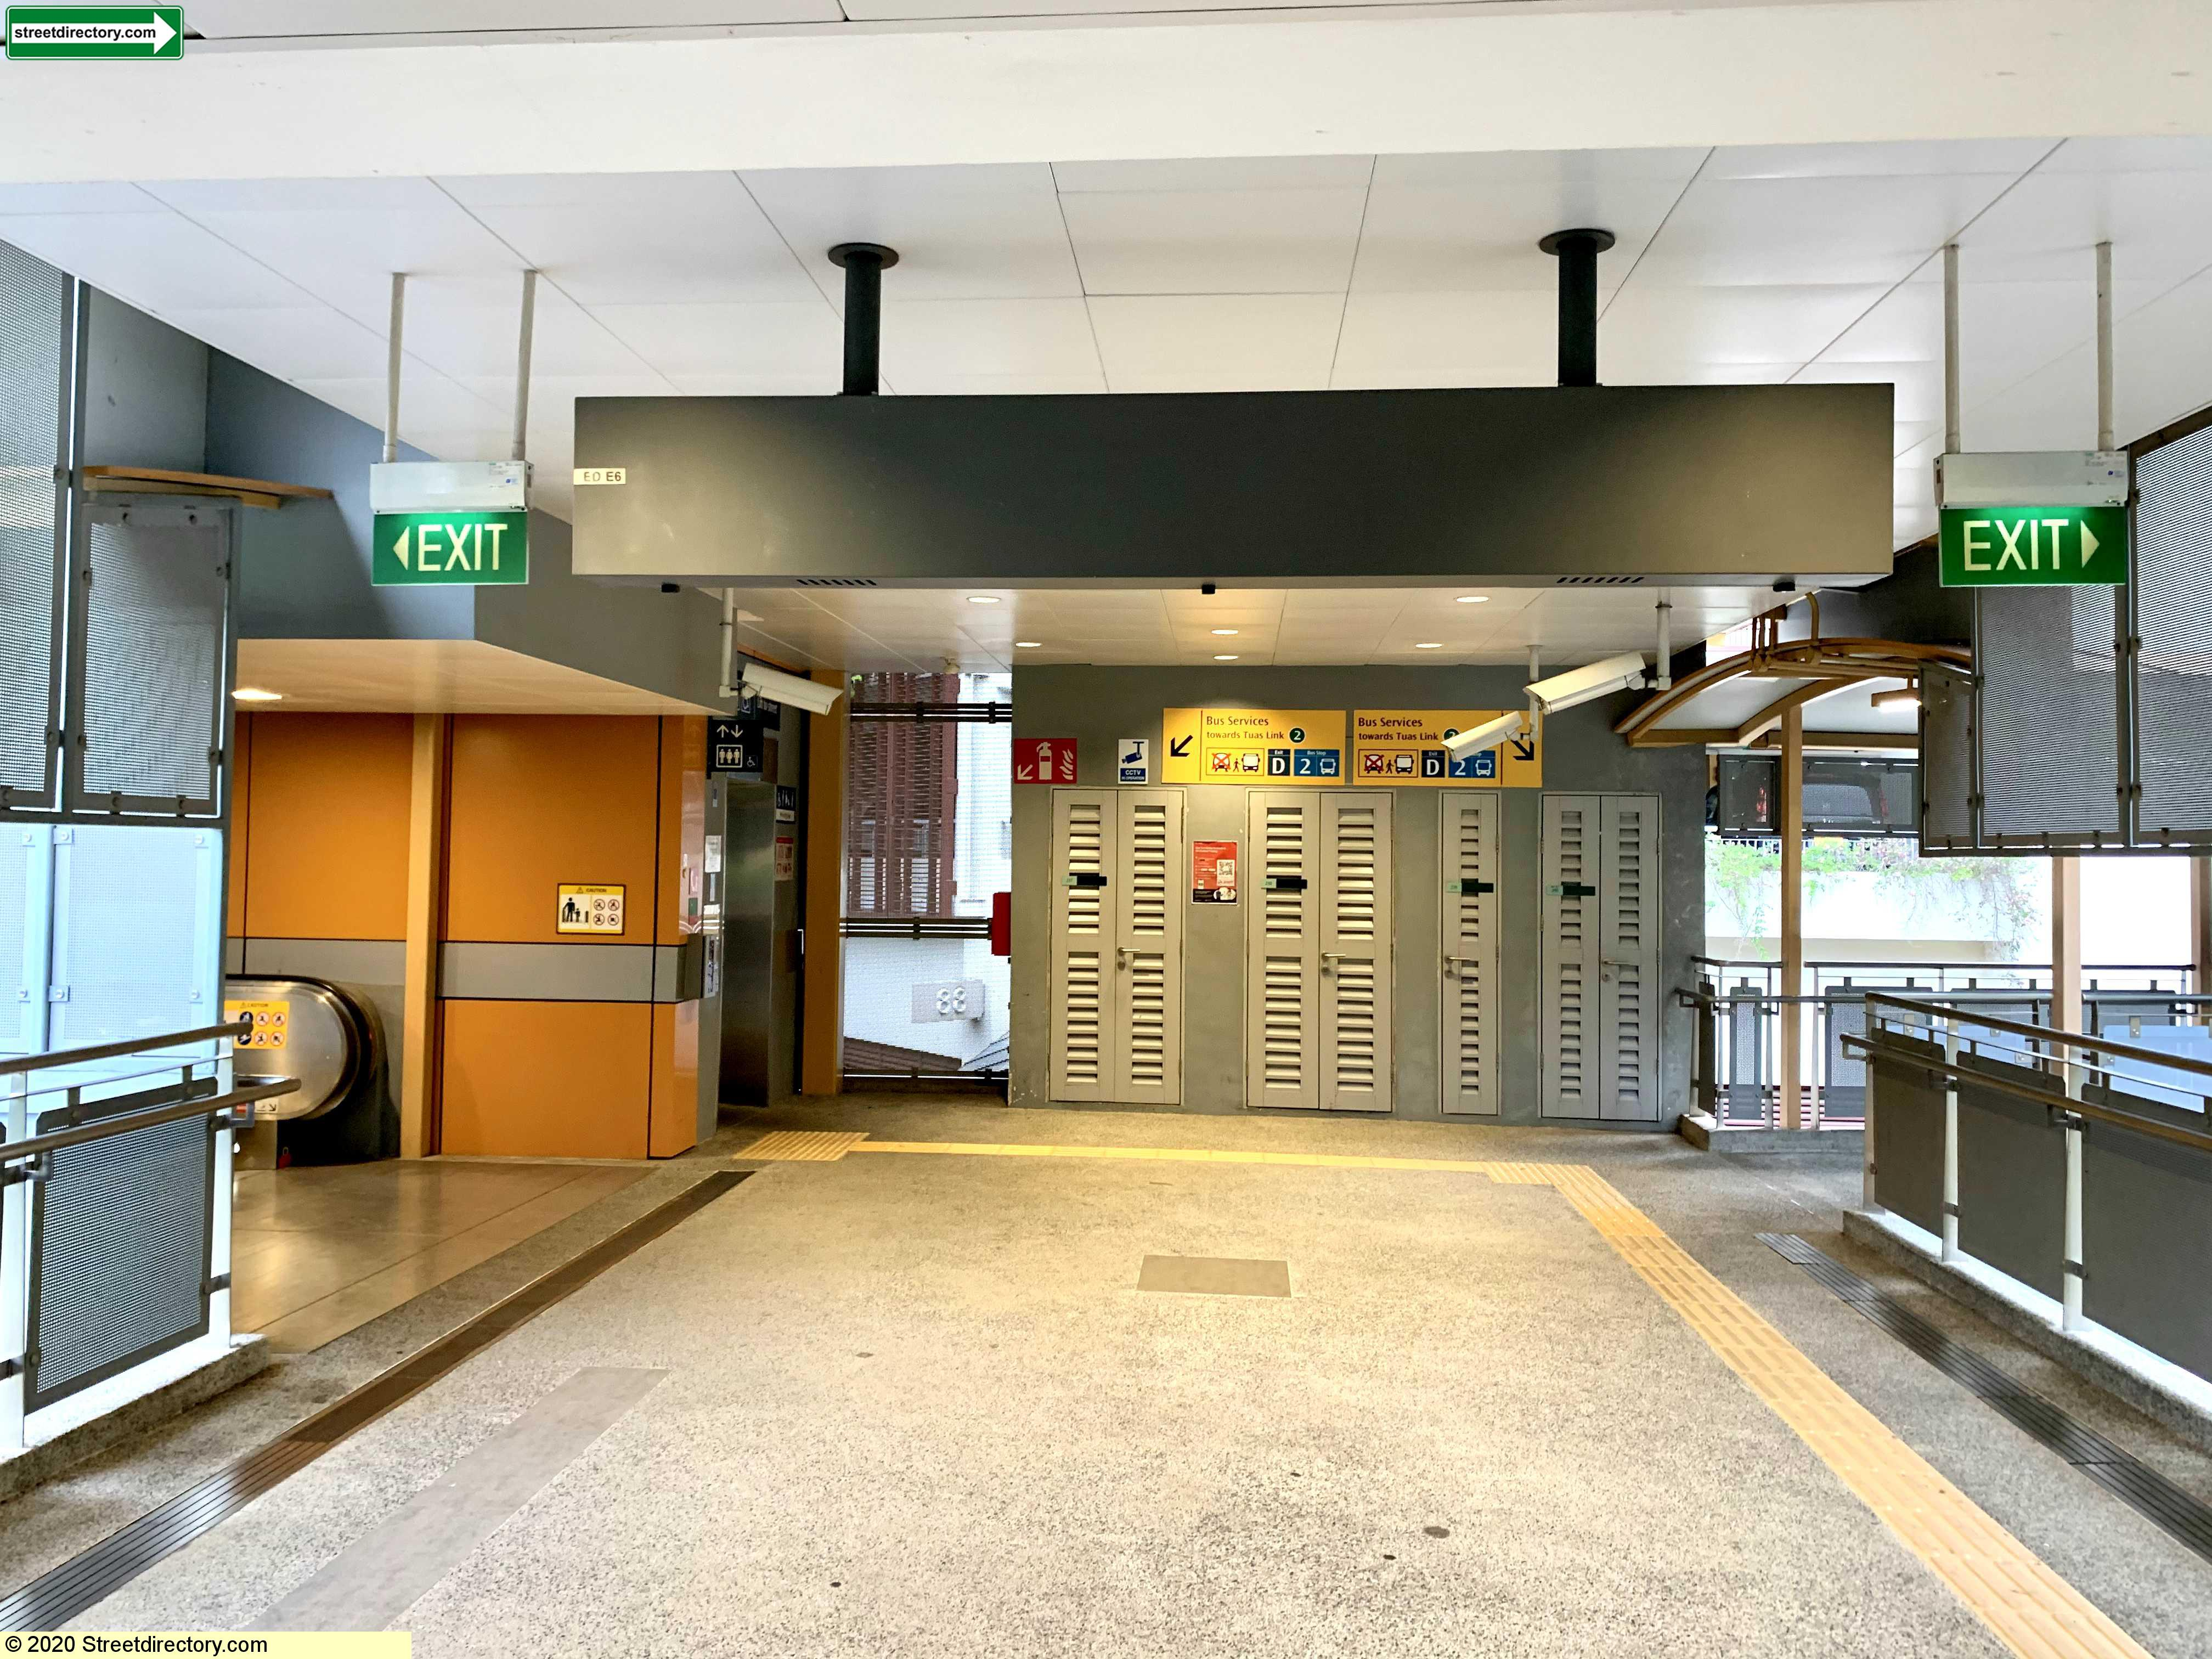 Entrance/Exit D - Commonwealth MRT Station (EW20)